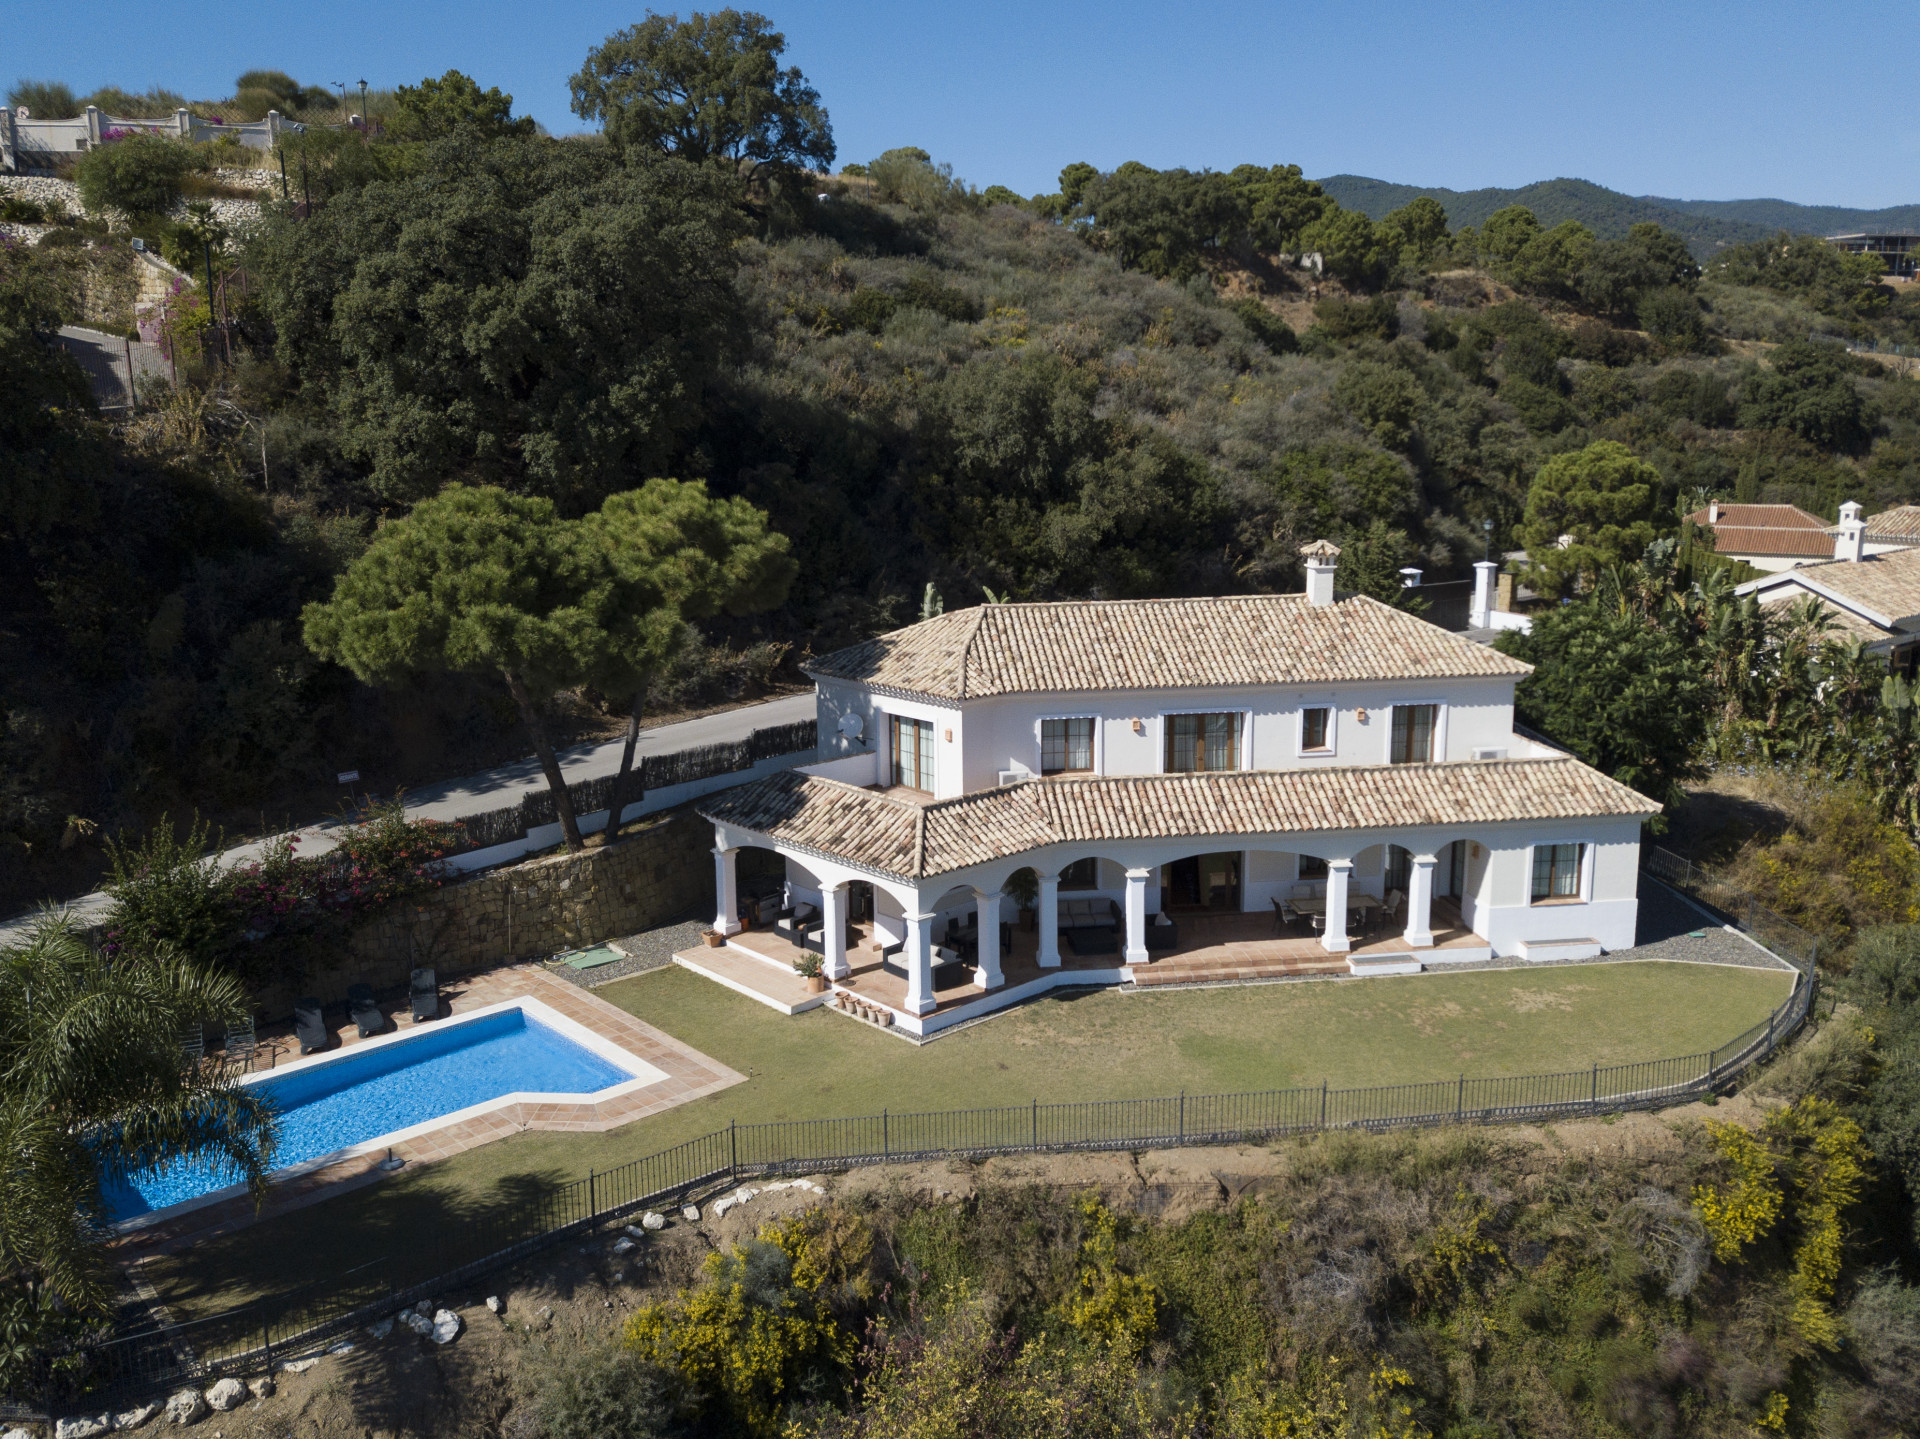 Villa met authentiek karakter in Benahavis